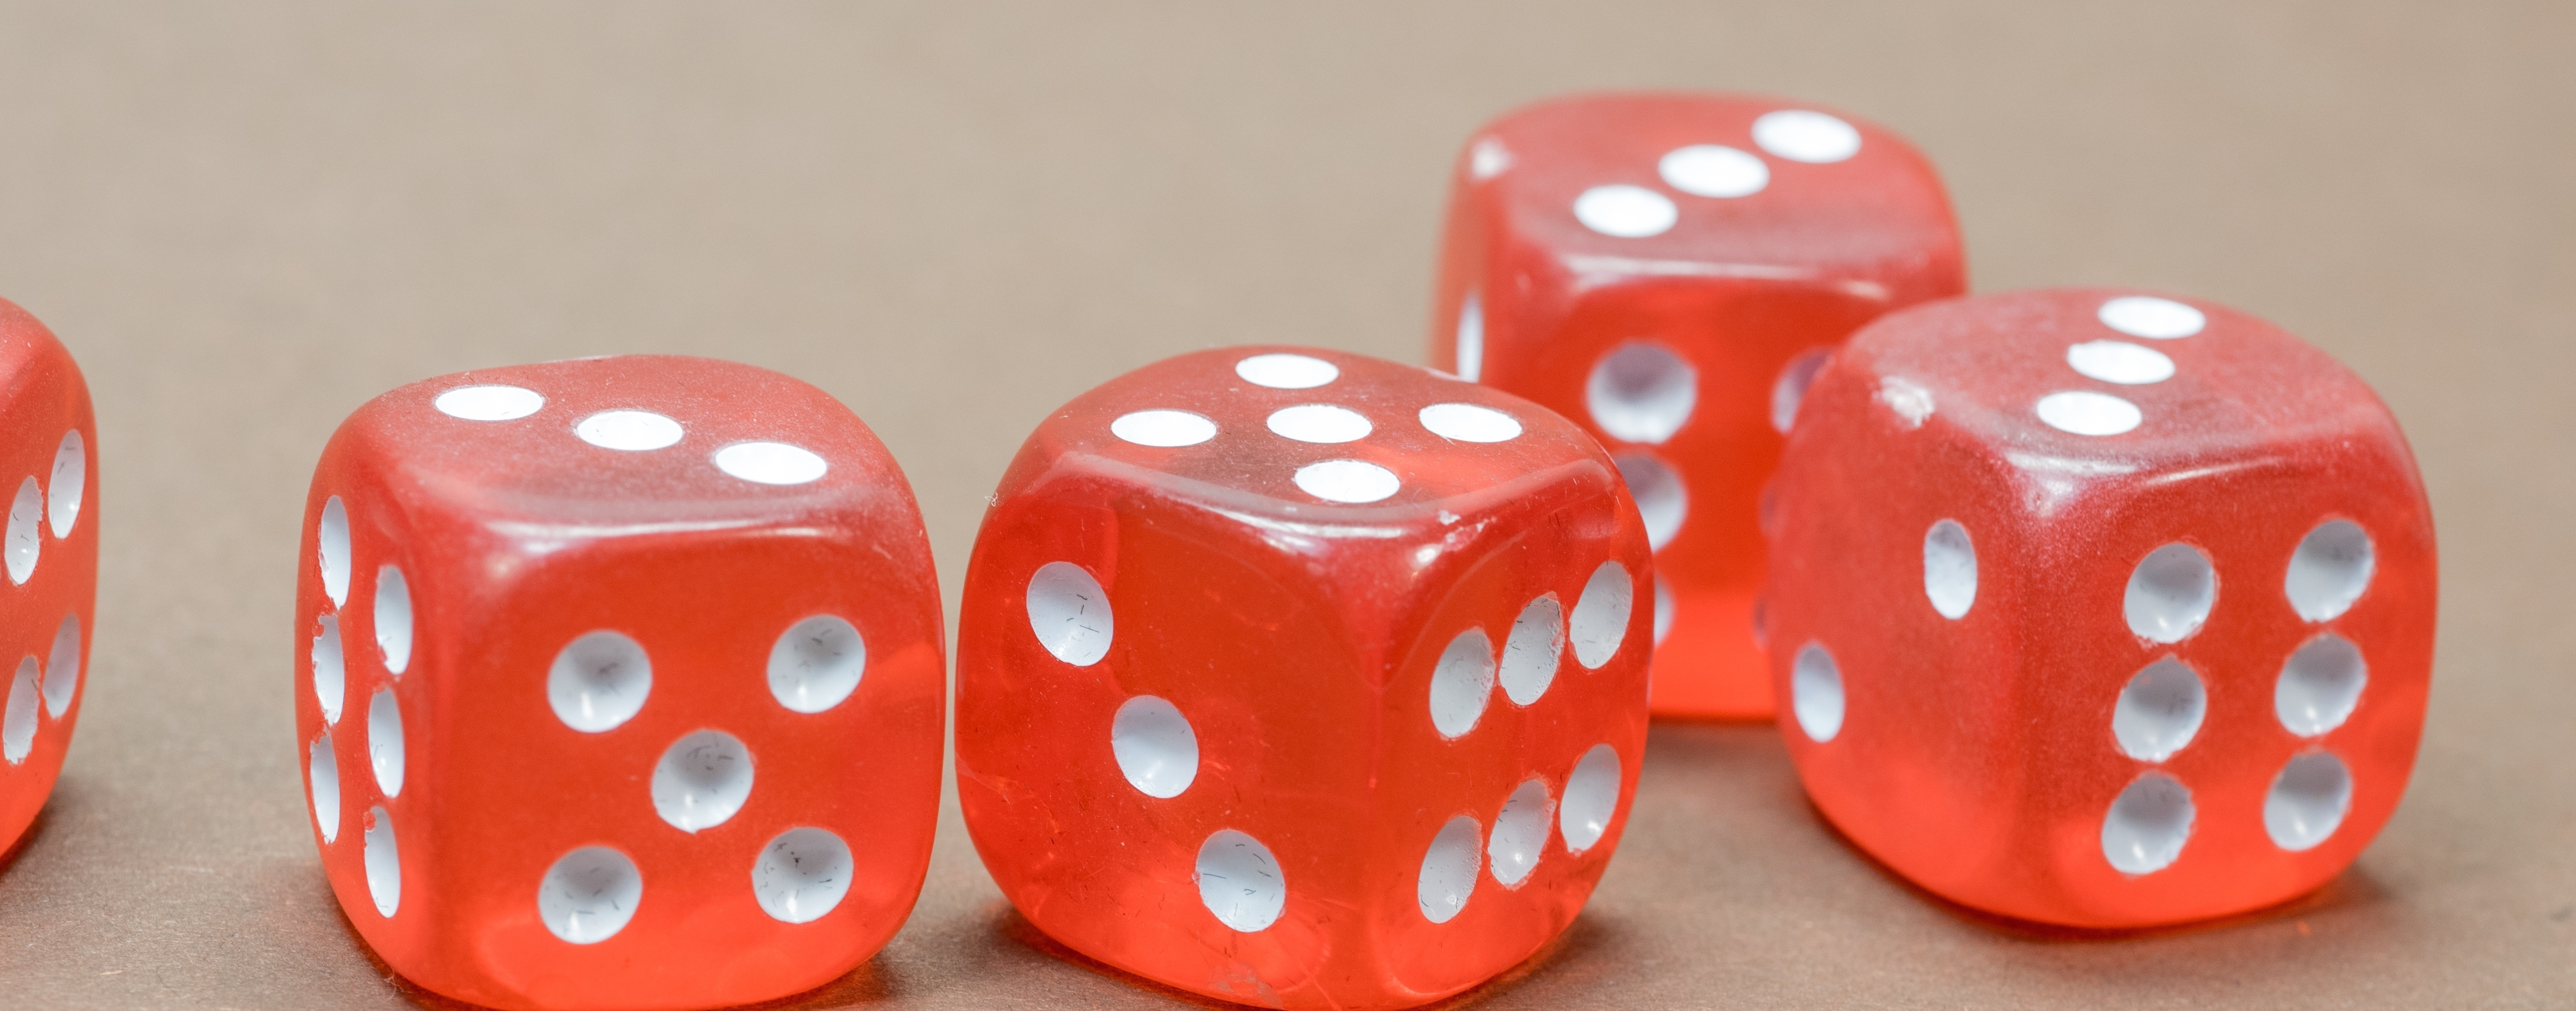 Taking a risk-based approach to online gambling regulation